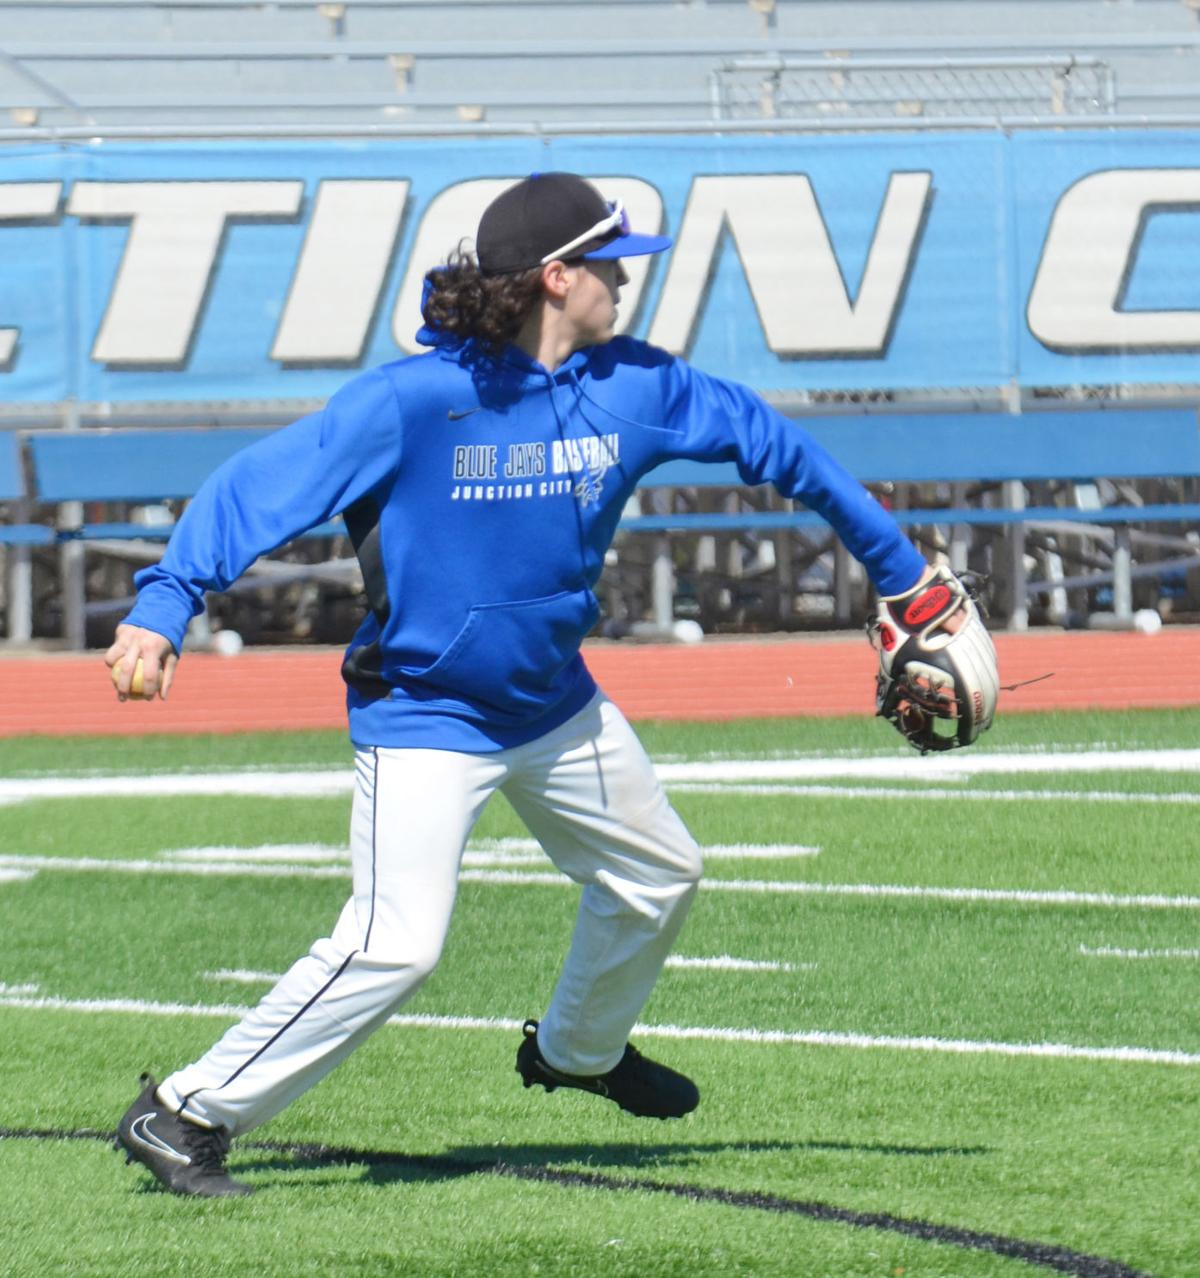 Experienced players have Stivers optimistic about upcoming JC baseball season